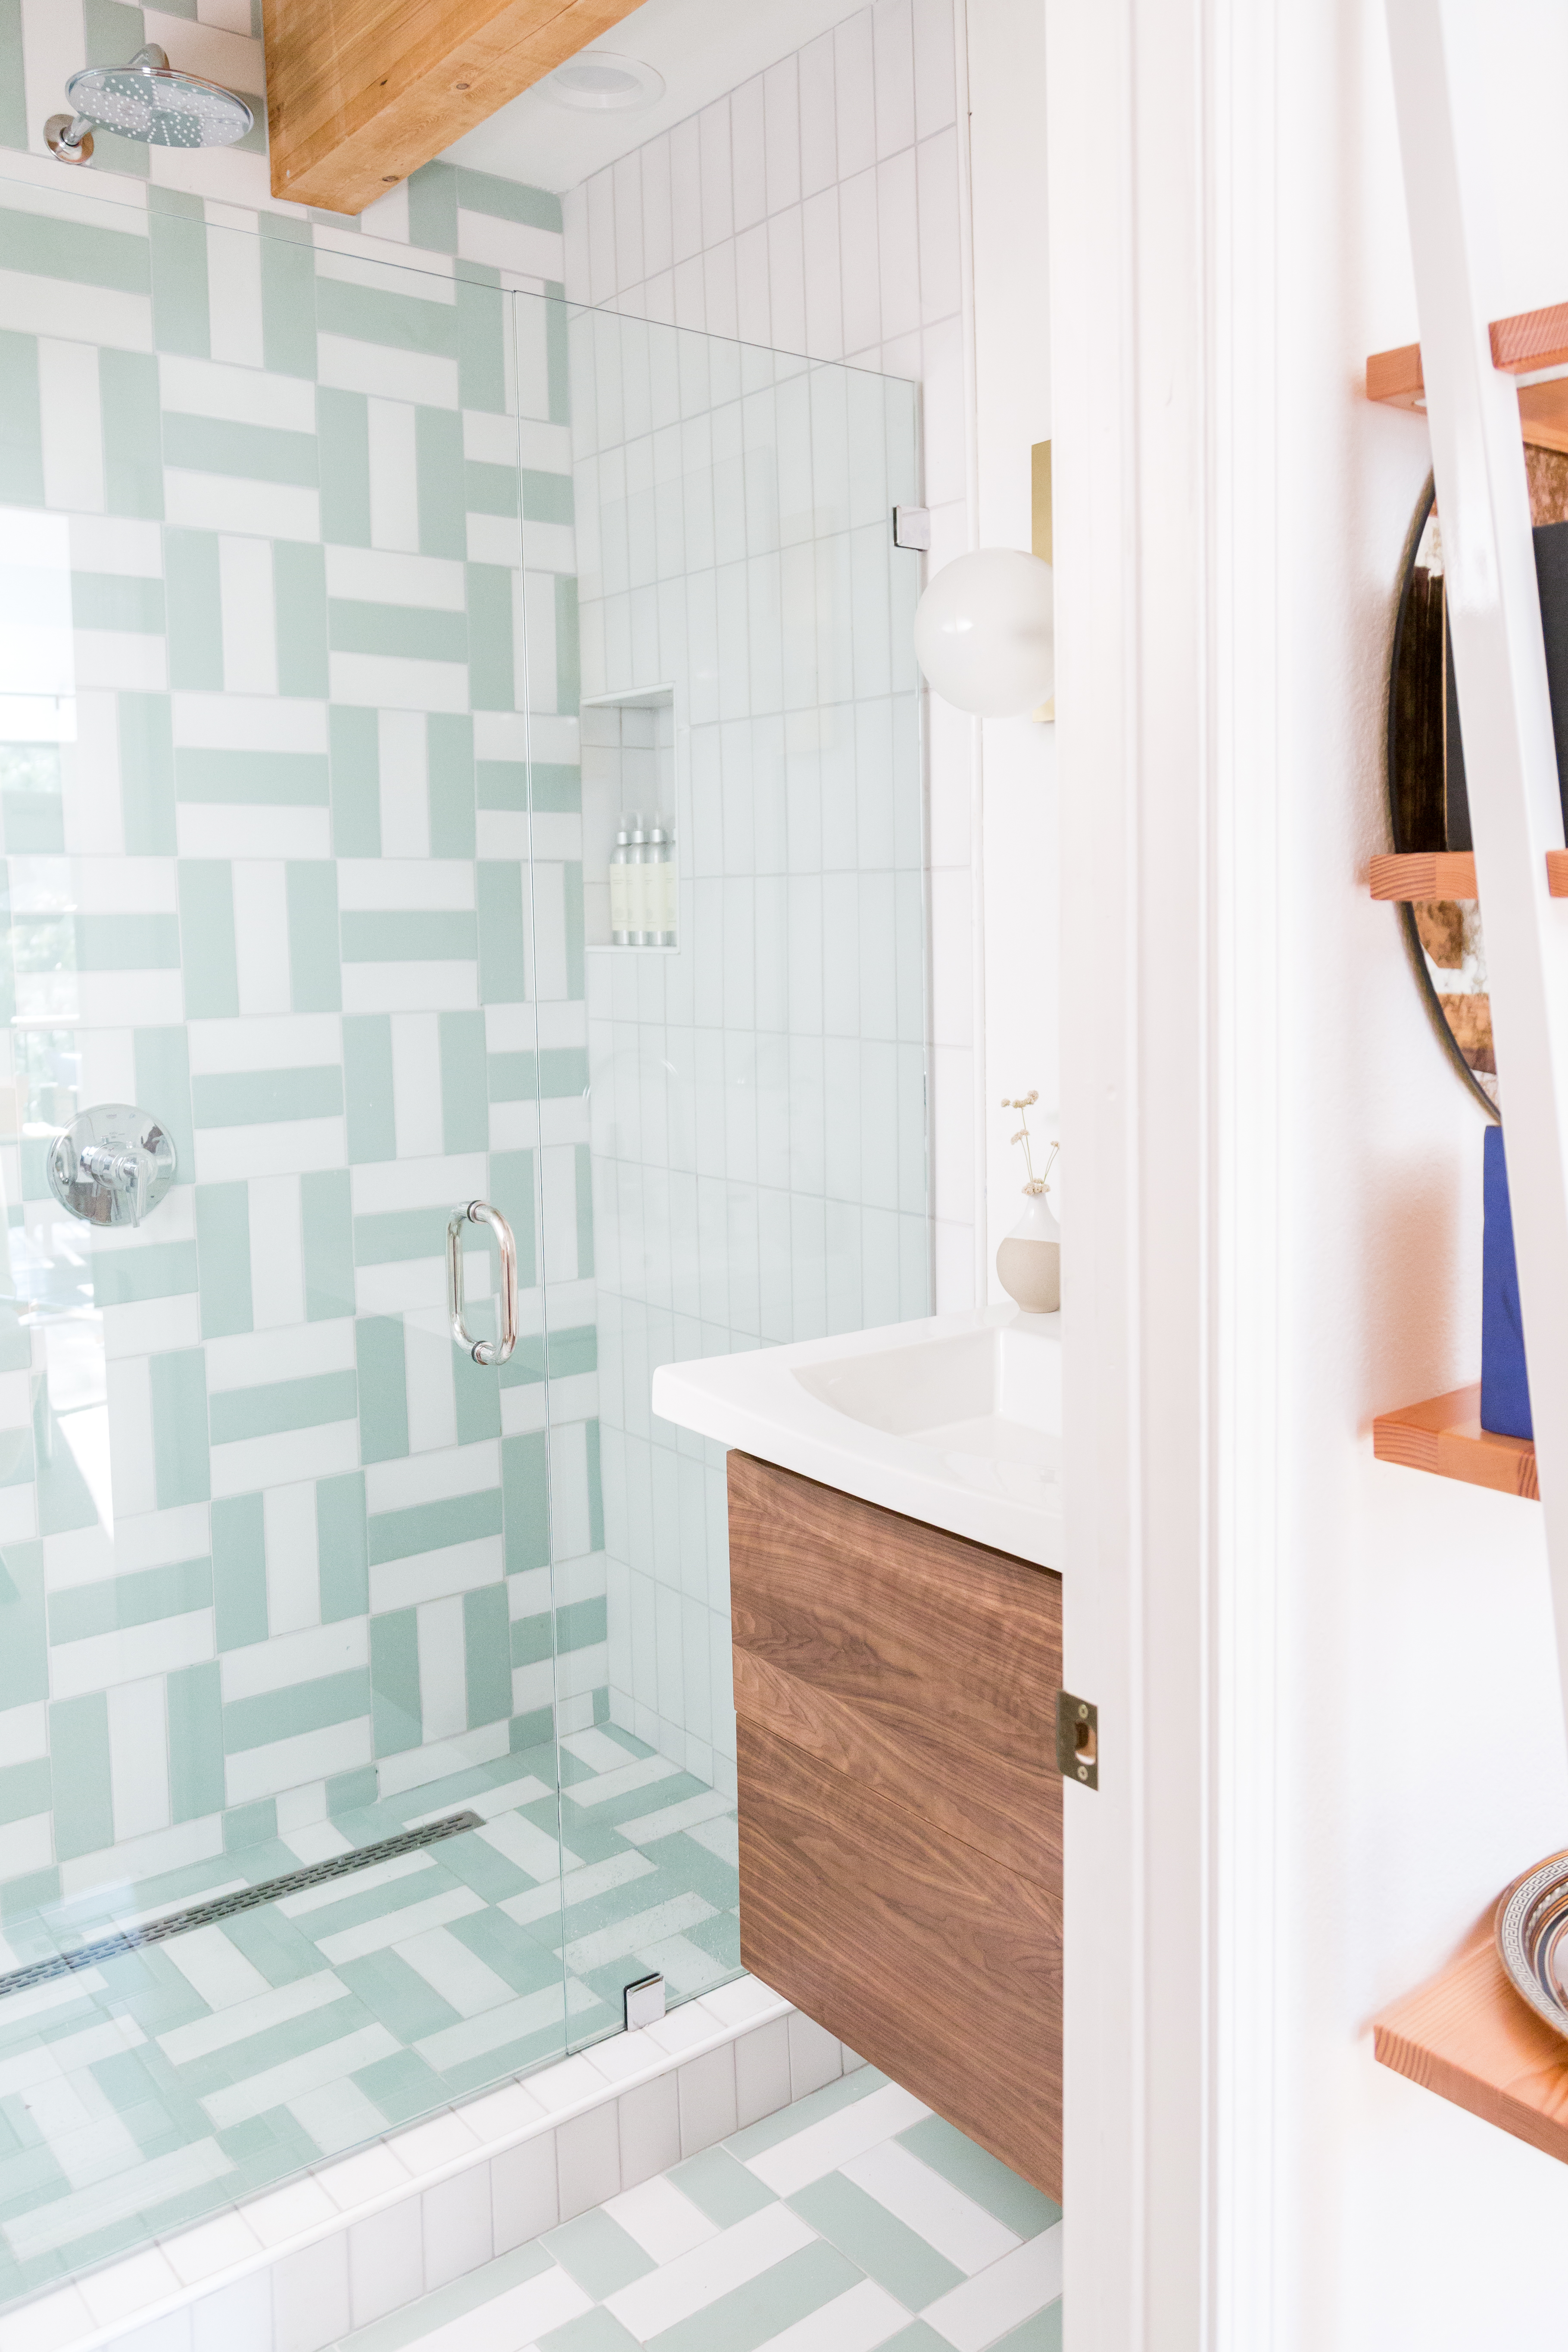 2018_Q3_image_residential_influencer_Kitchy Kitchen_Claire_Thomas_bathroom_wall_floor_tile_parquet_straight_set_daisy_sea_glass_3x9_master_bath_full_2?  ...